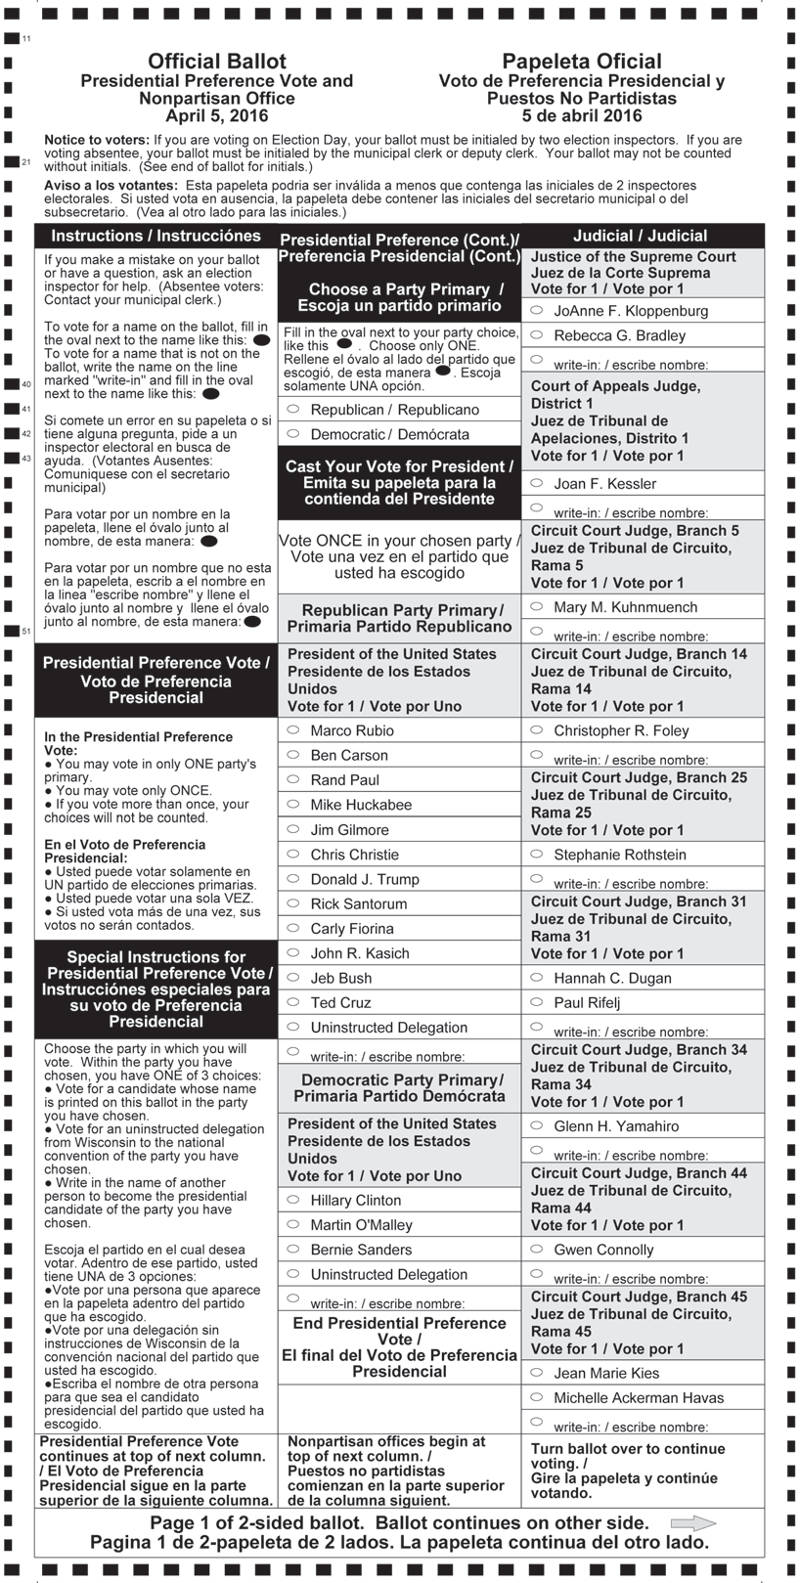 Spring-Election-Presidential-Preference-Vote-Sample-Ballots-optical-scan-page-1